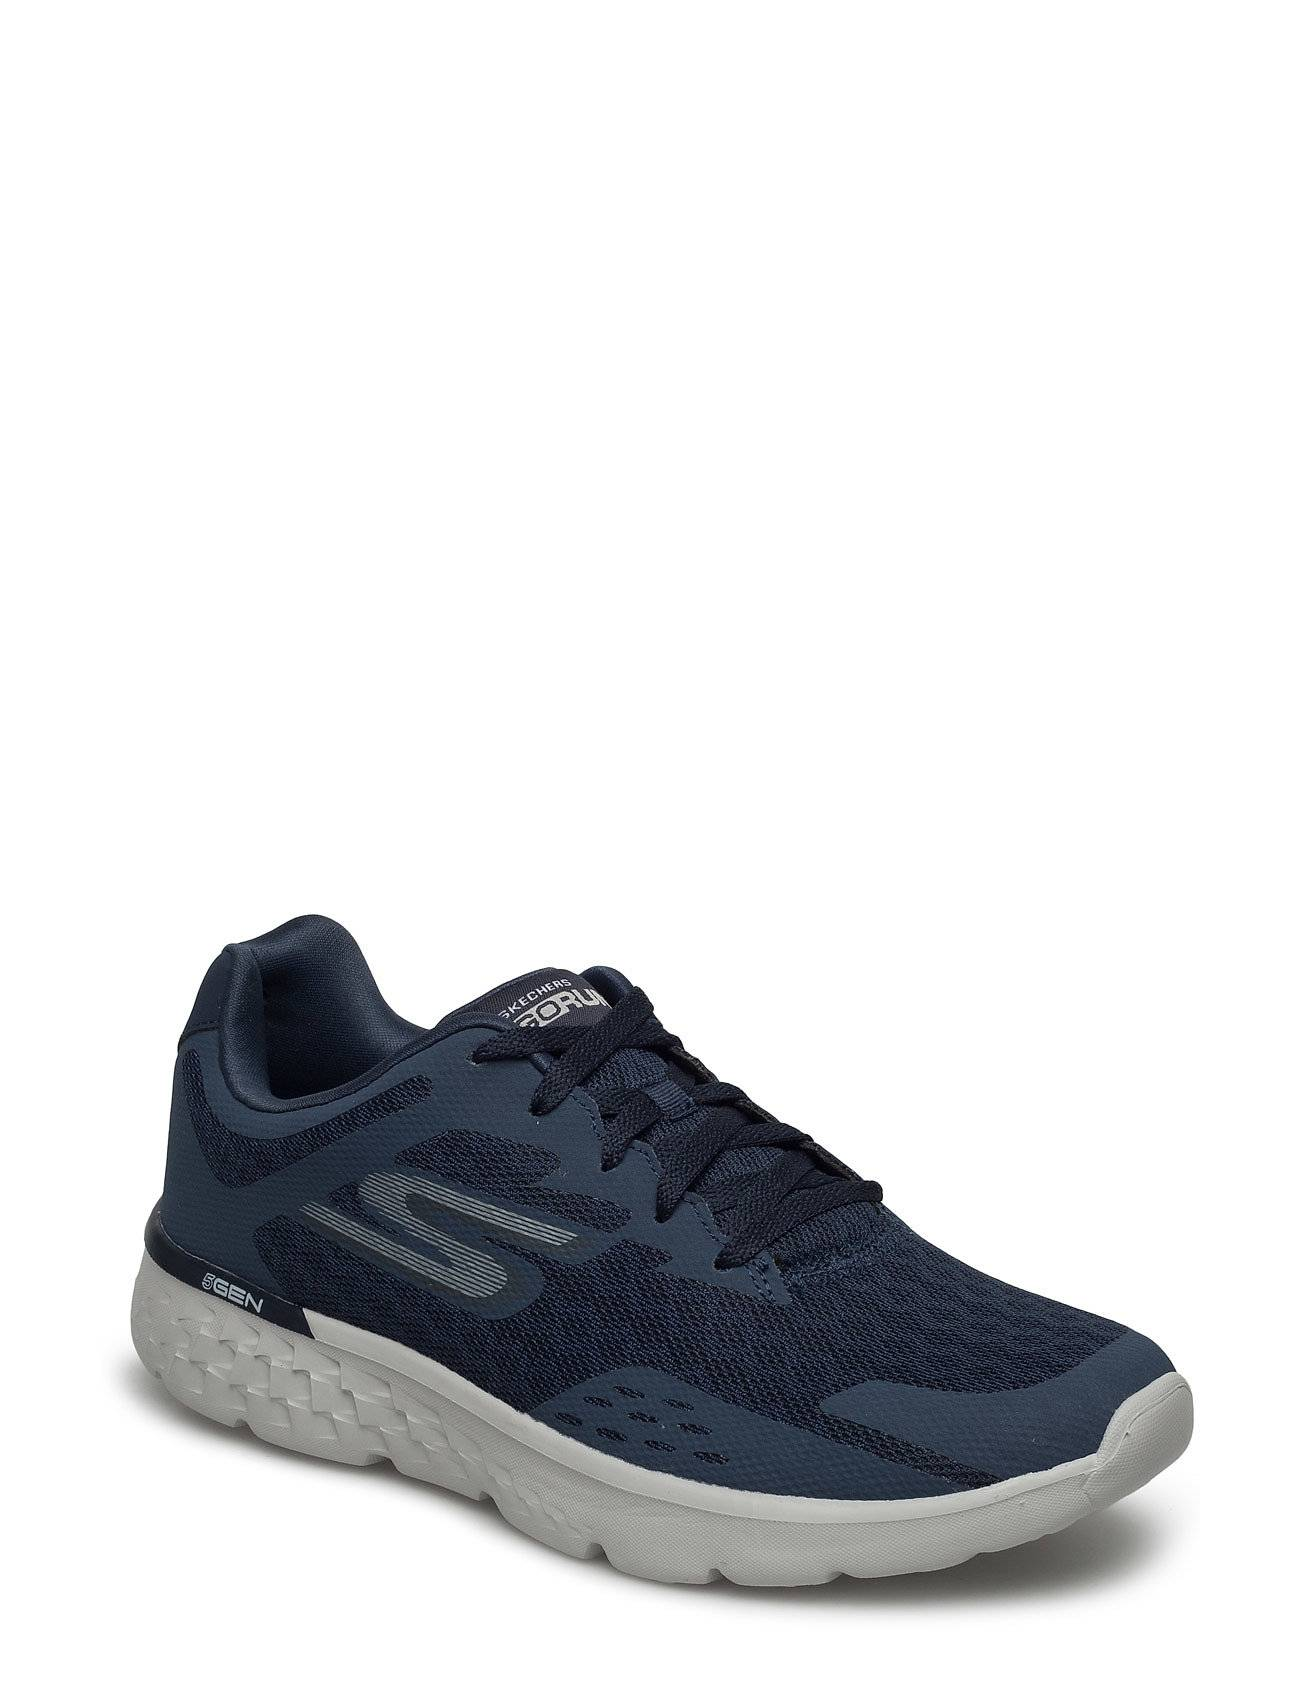 Skechers Mens Go Run 400